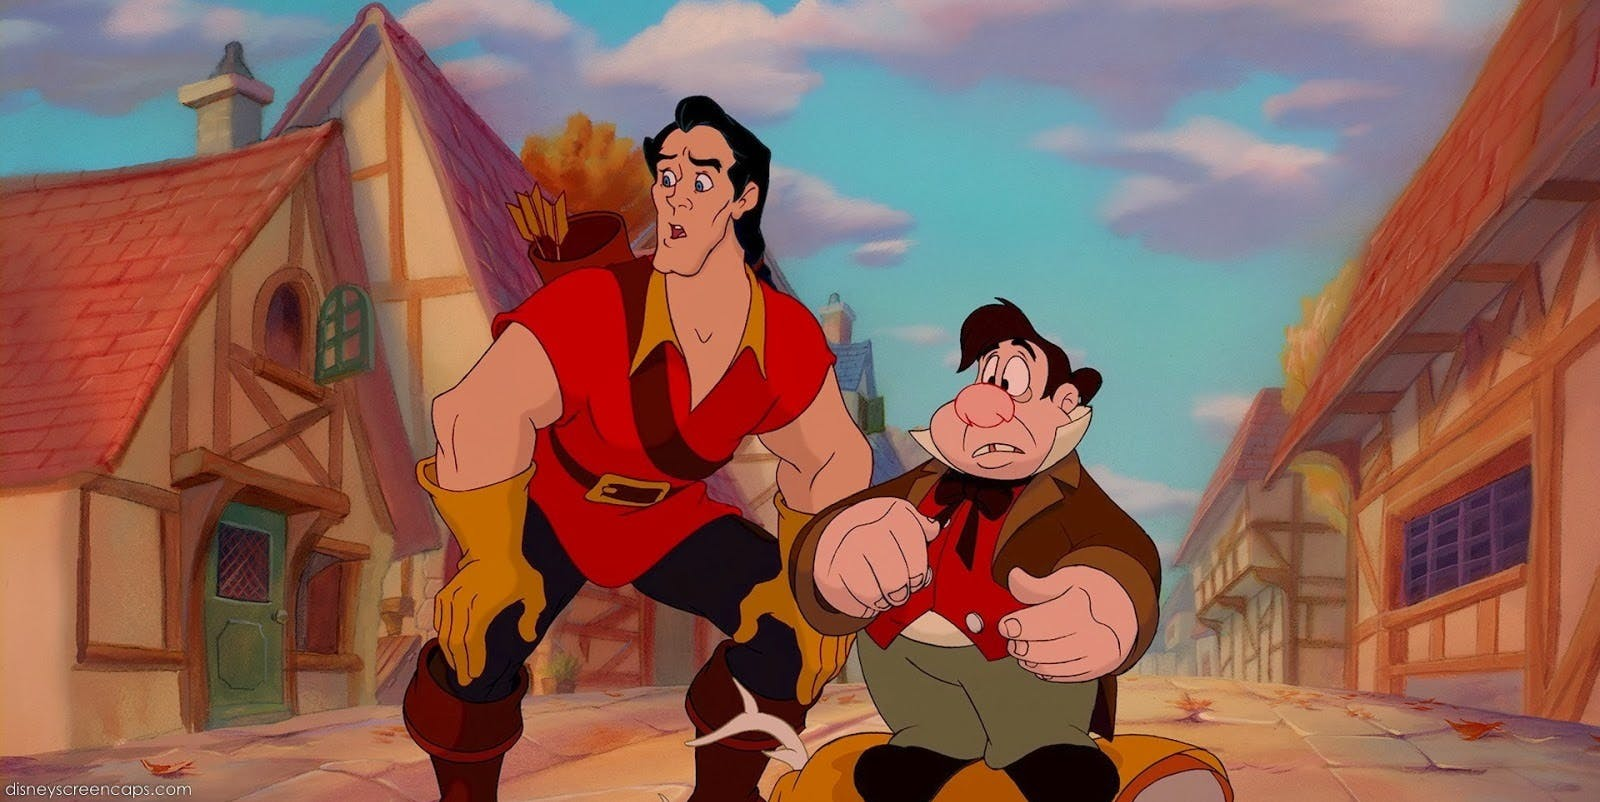 Gaston and LeFou in the 1991 animated 'Beauty and the Beast.'